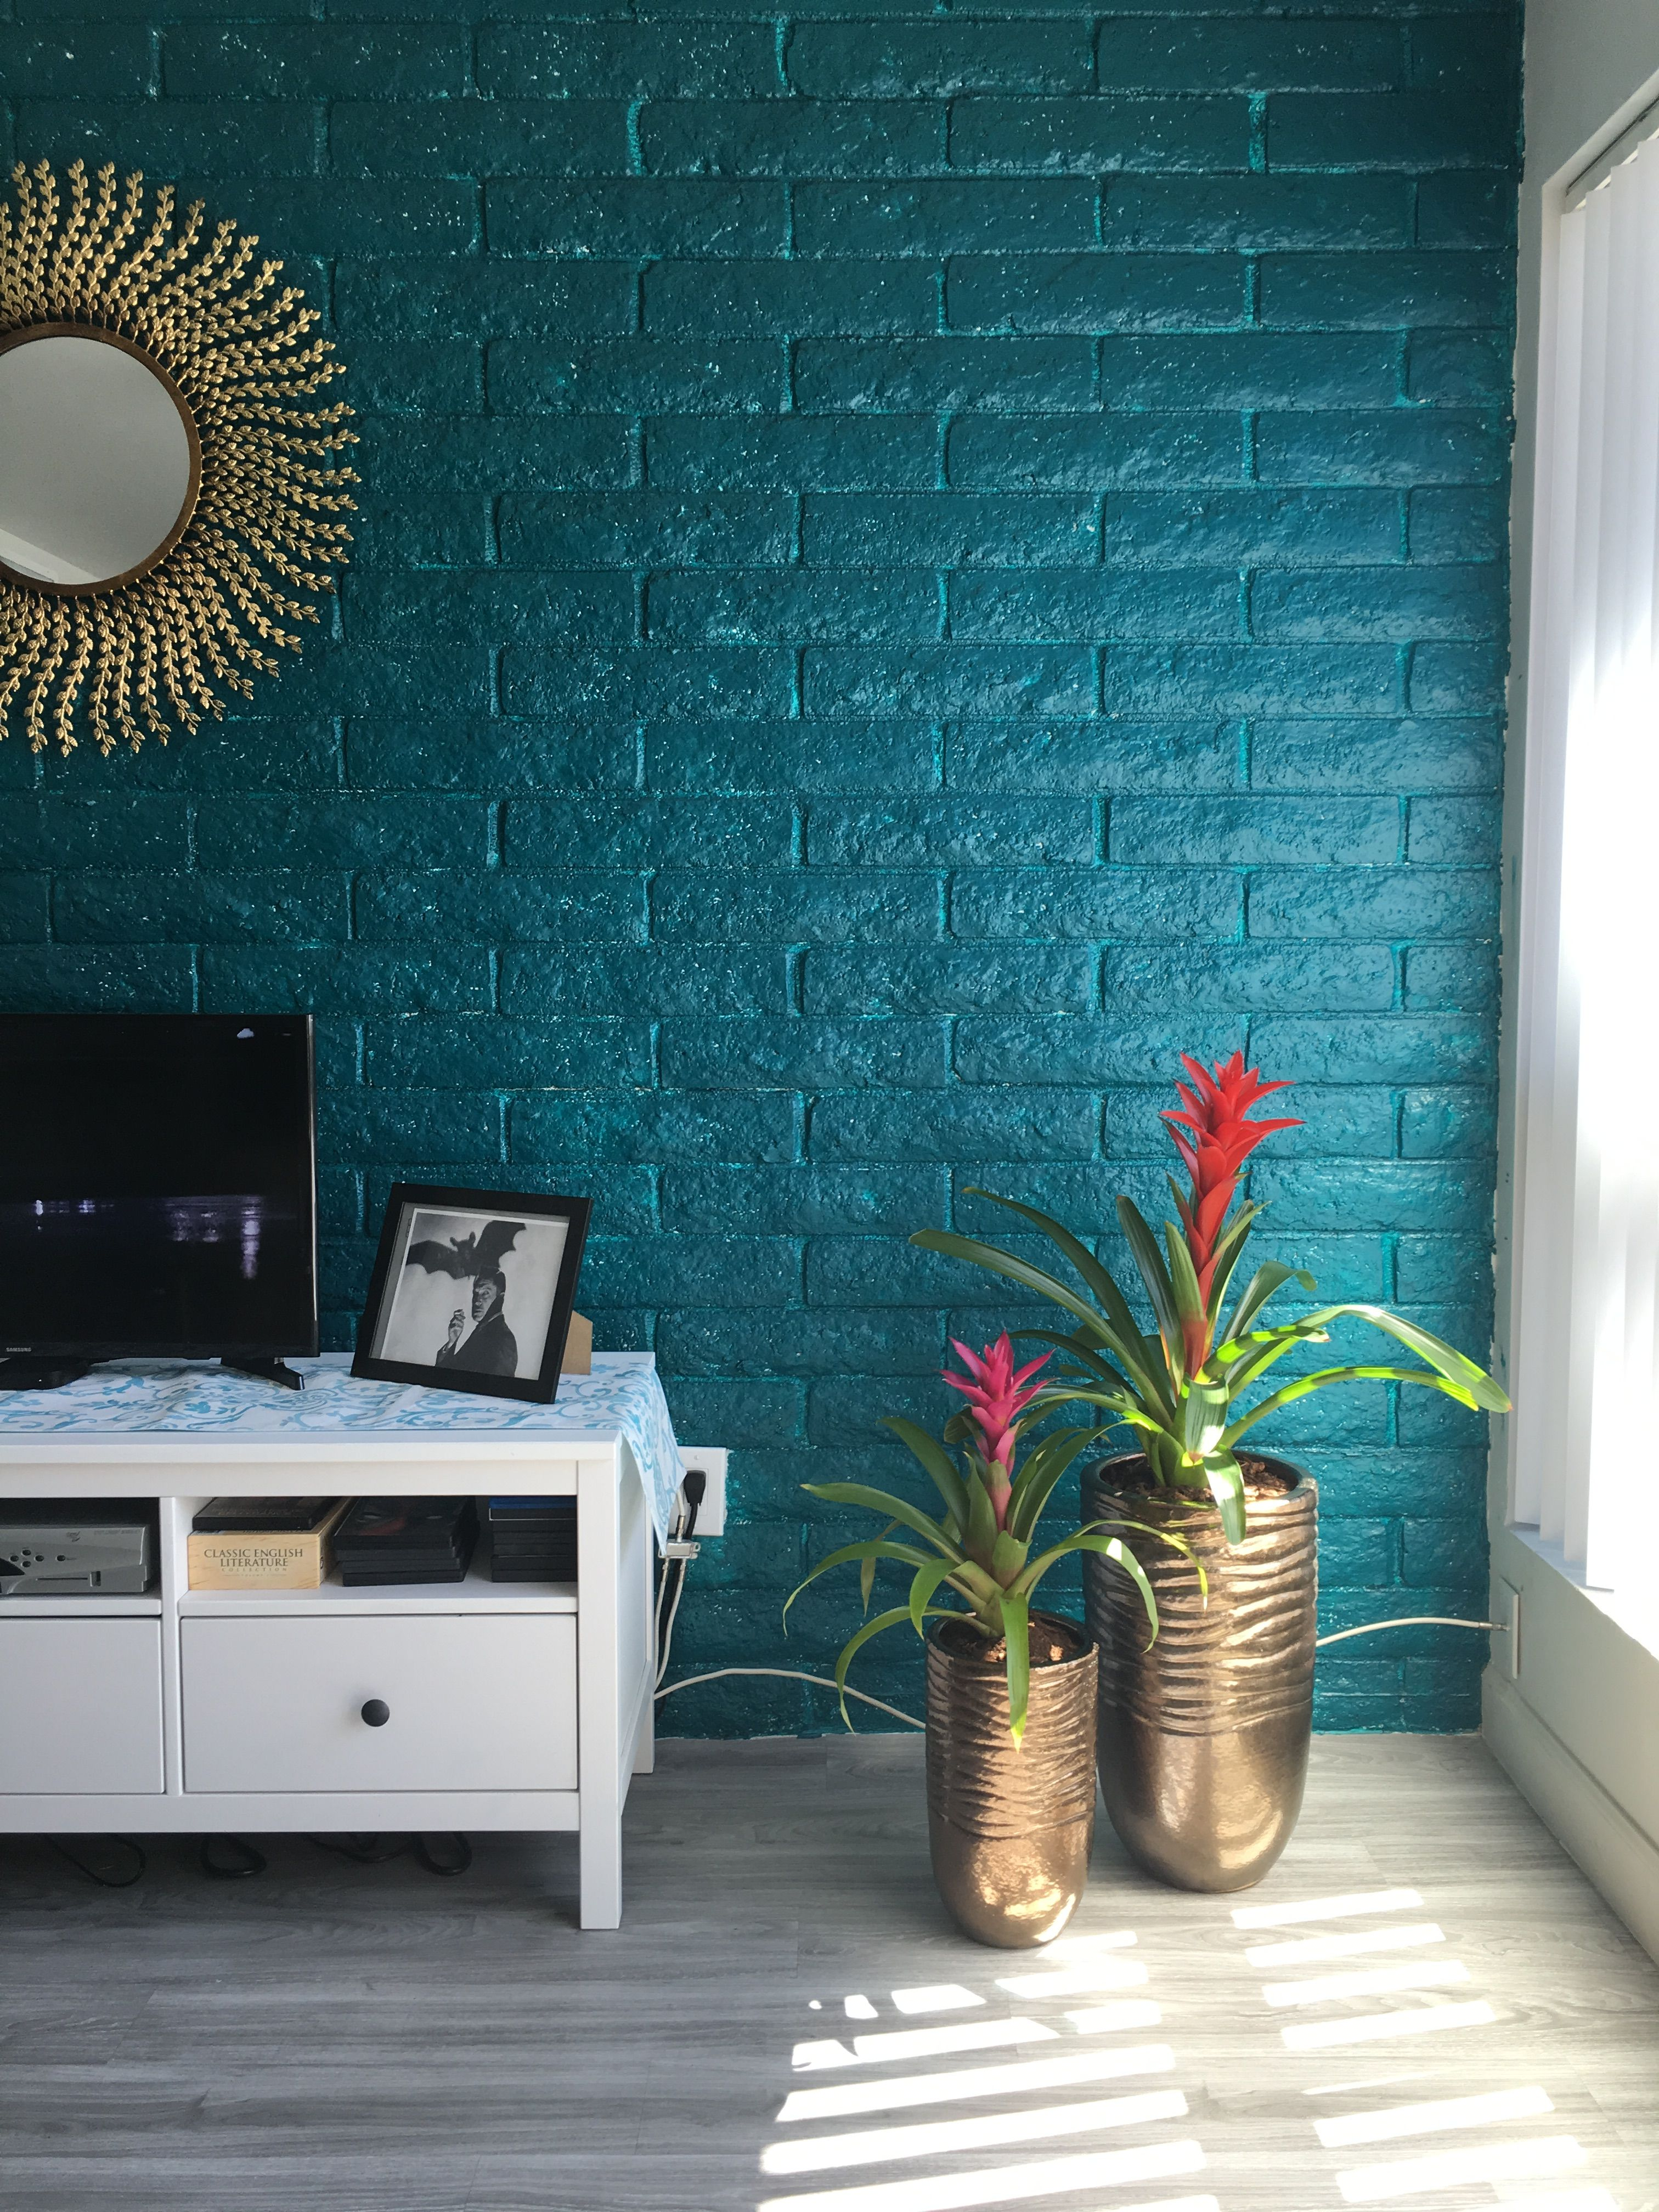 """I'm gonna miss this teal wall when I move! """"Tahitian Treat"""